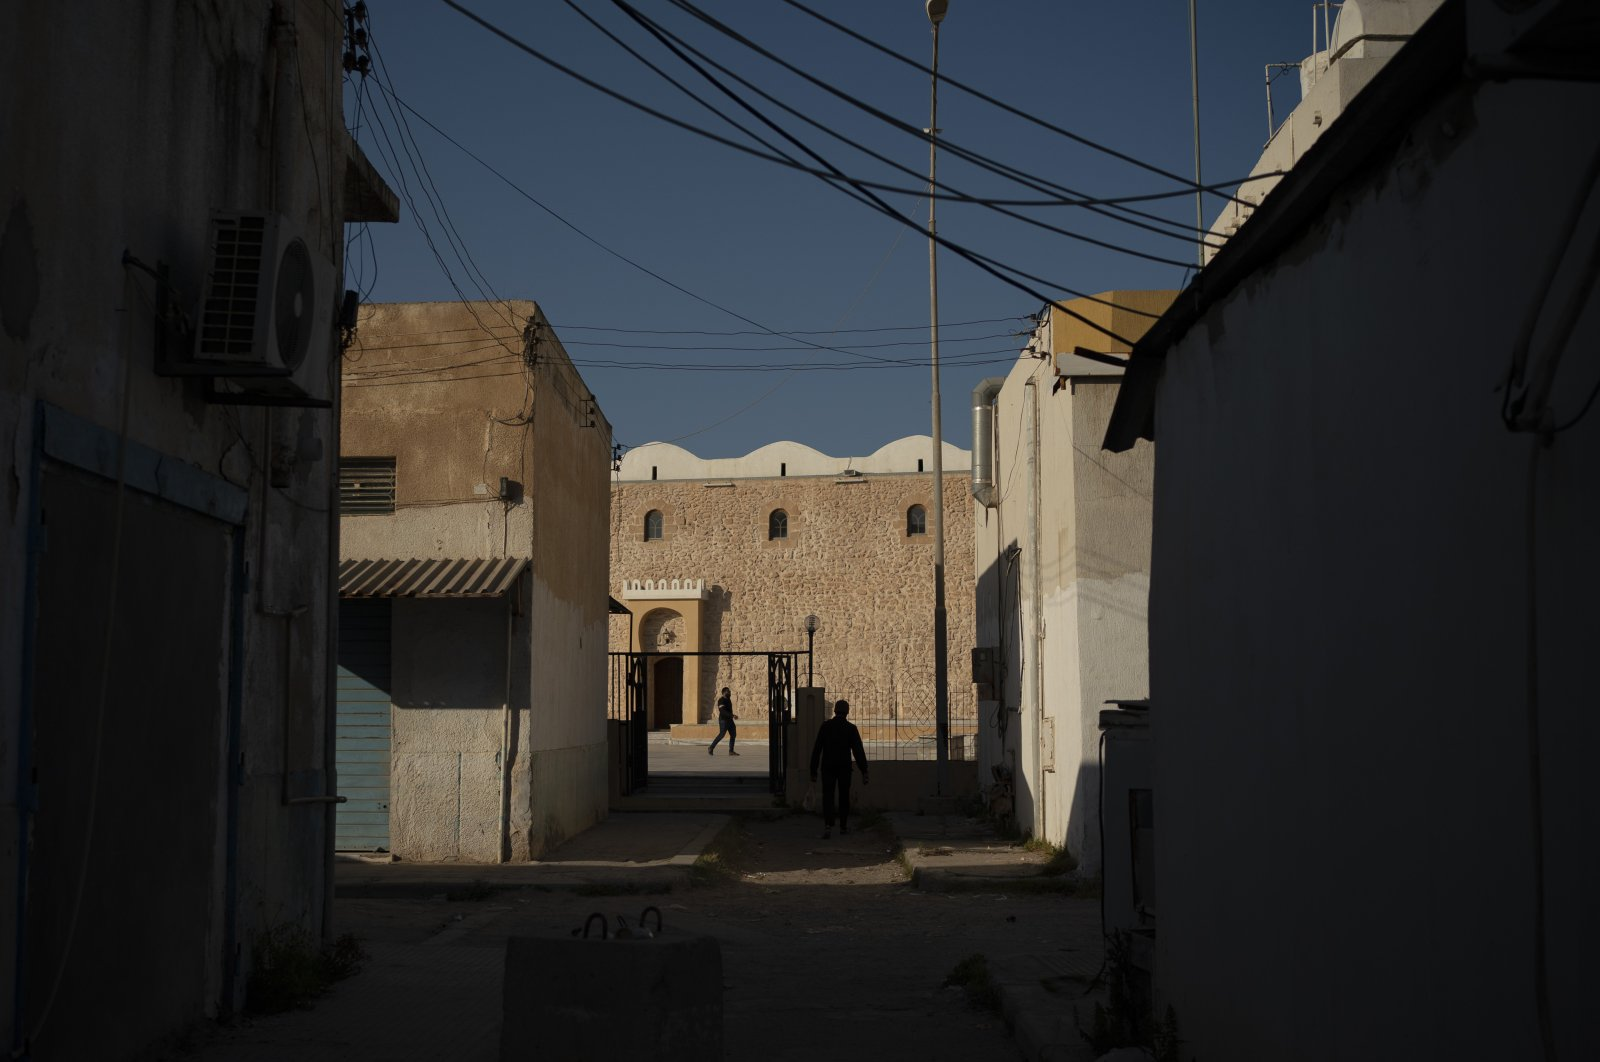 People walk outside a mosque in Tripoli, Libya, on Feb. 27, 2020. Eastern-based Haftar forces attacked Tripoli last spring to wrest it from control of the U.N.-backed government. (AP Photo)